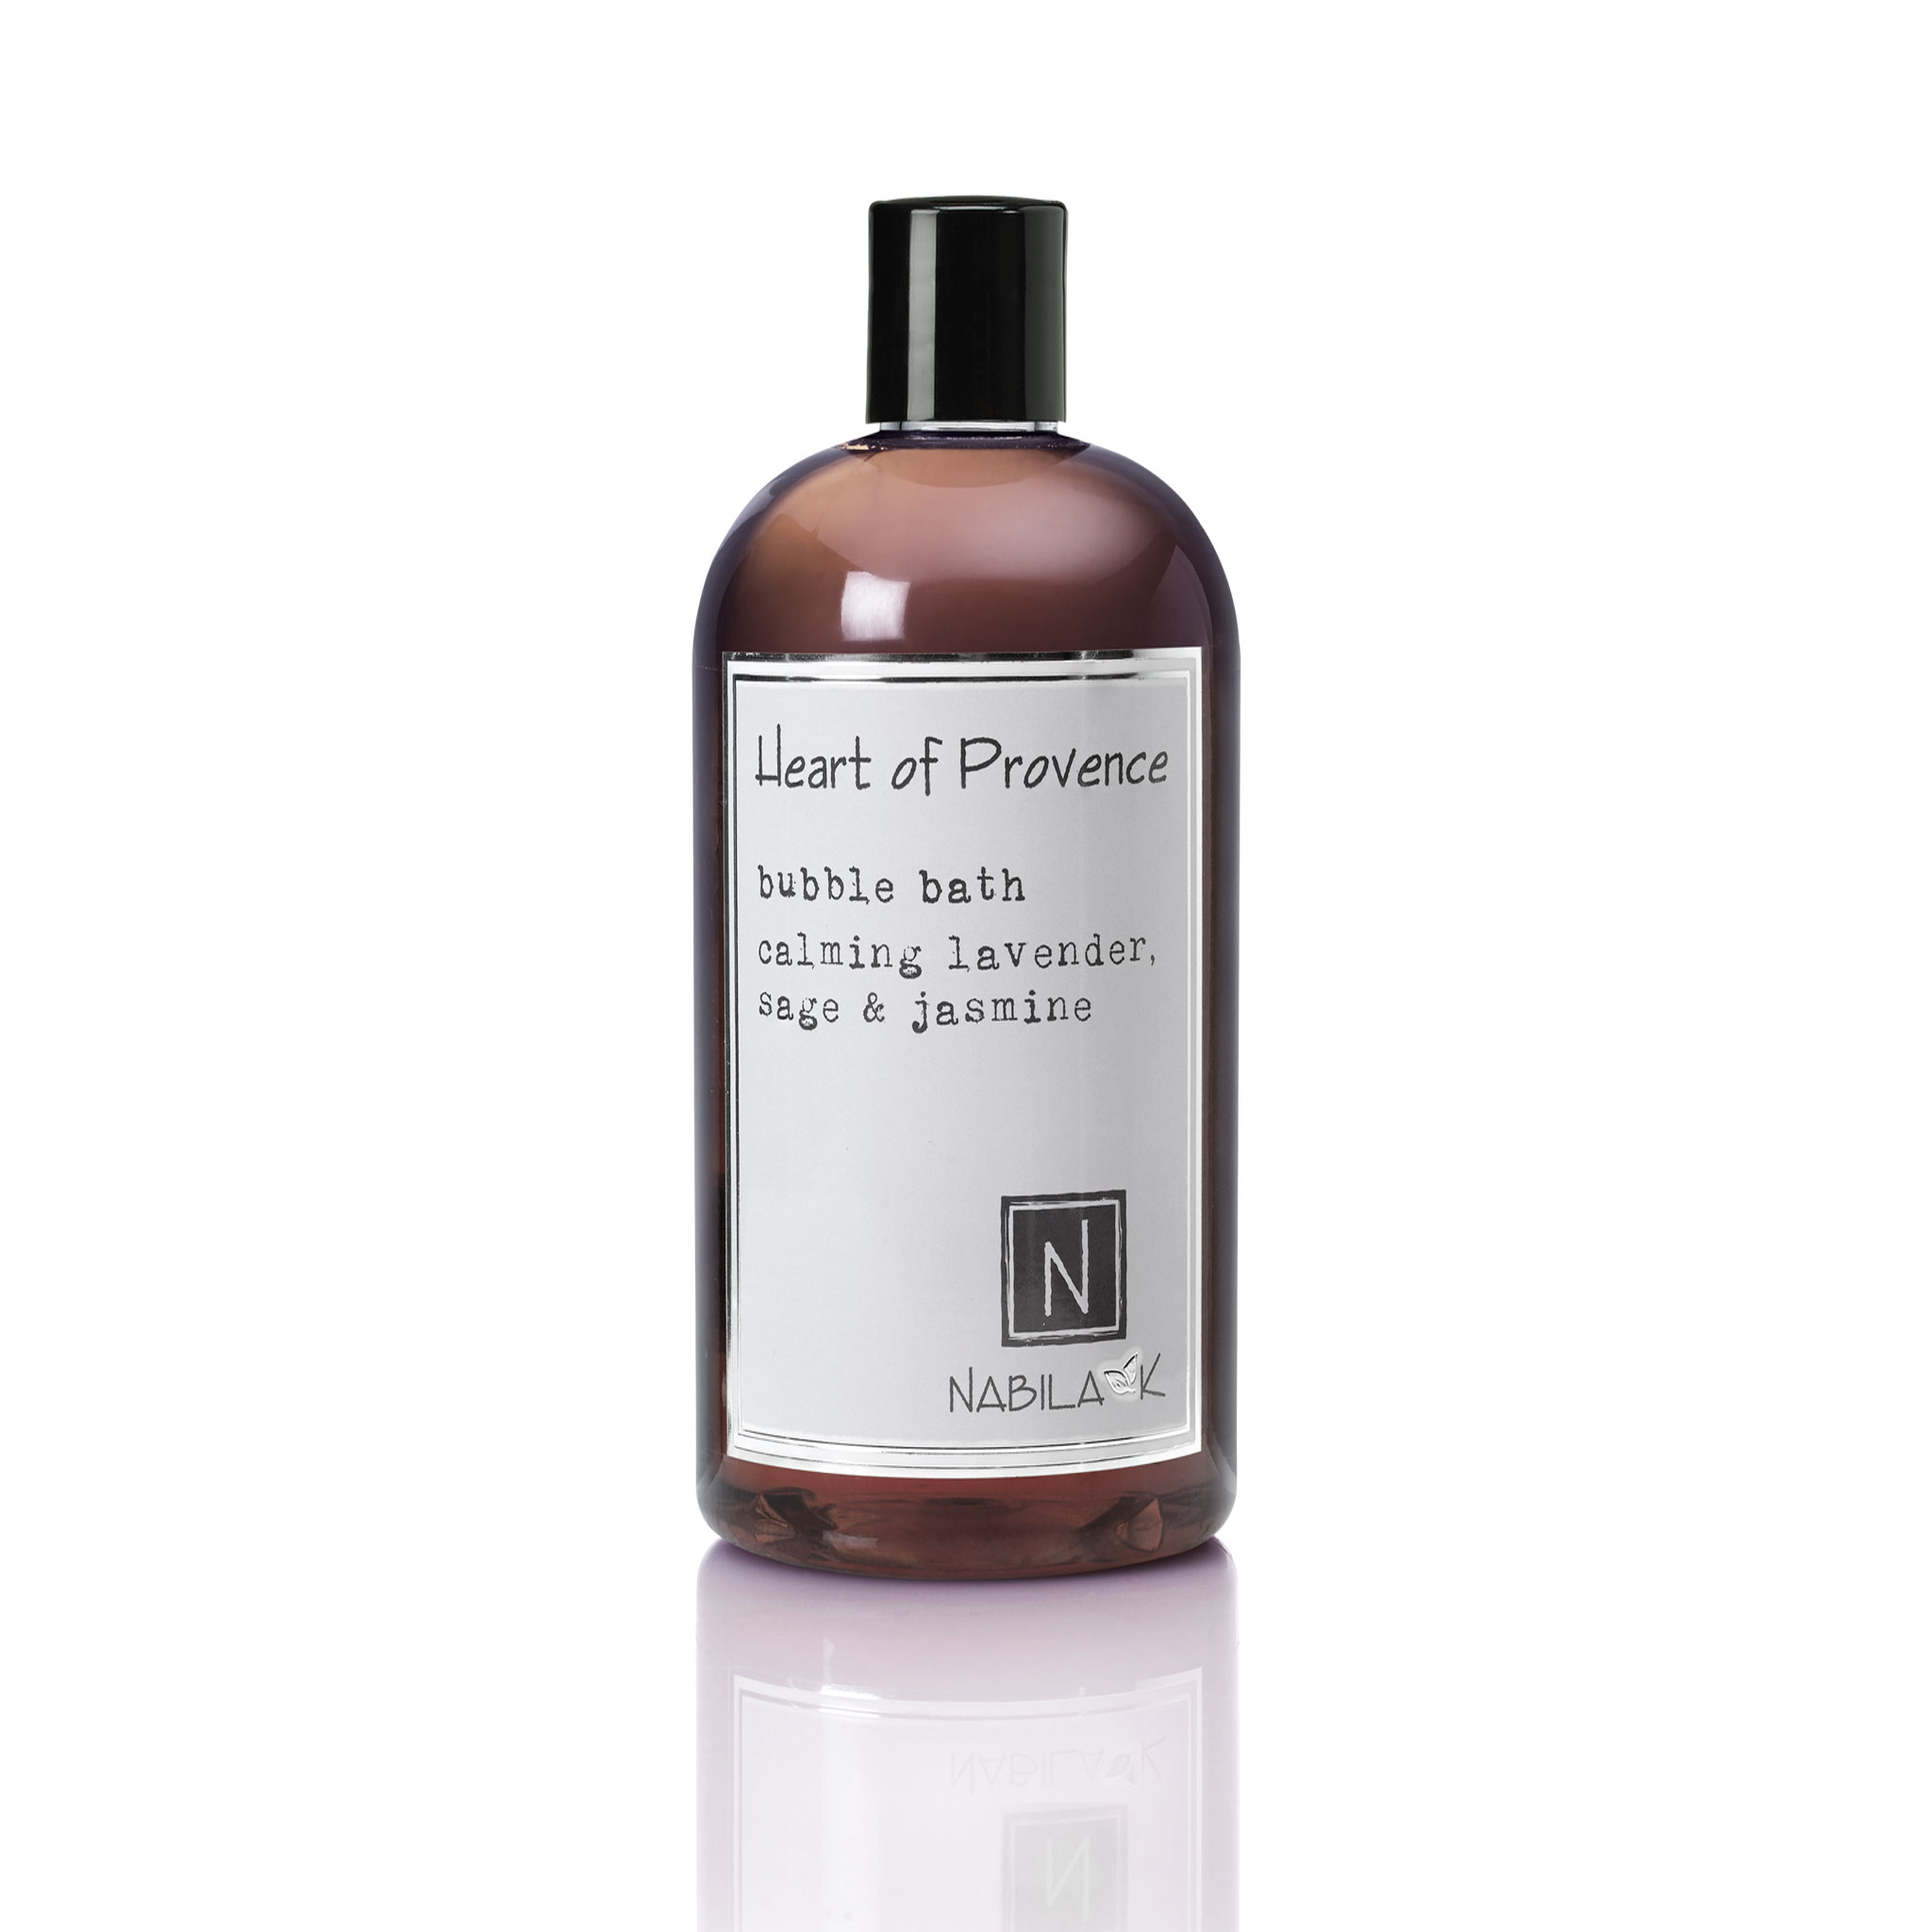 1 16oz bottle of heart of provence bubble bath calming lavender sage and jasmine